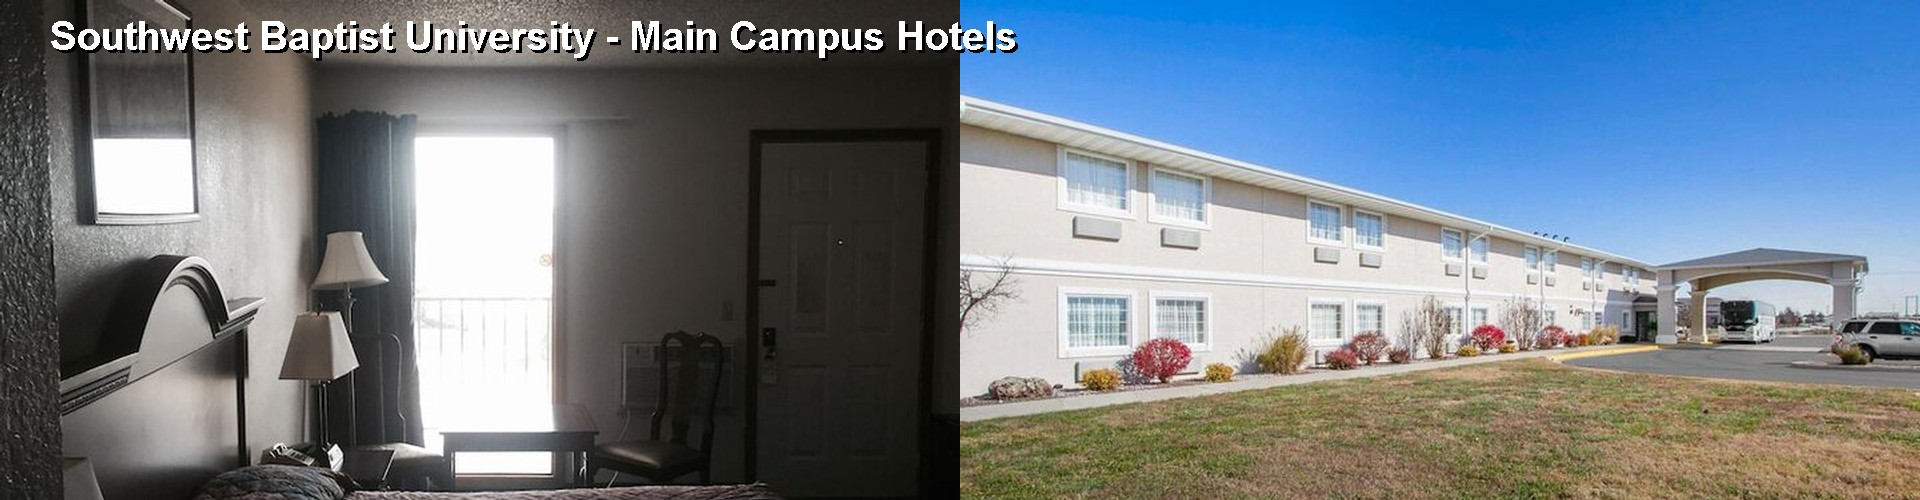 5 Best Hotels near Southwest Baptist University - Main Campus